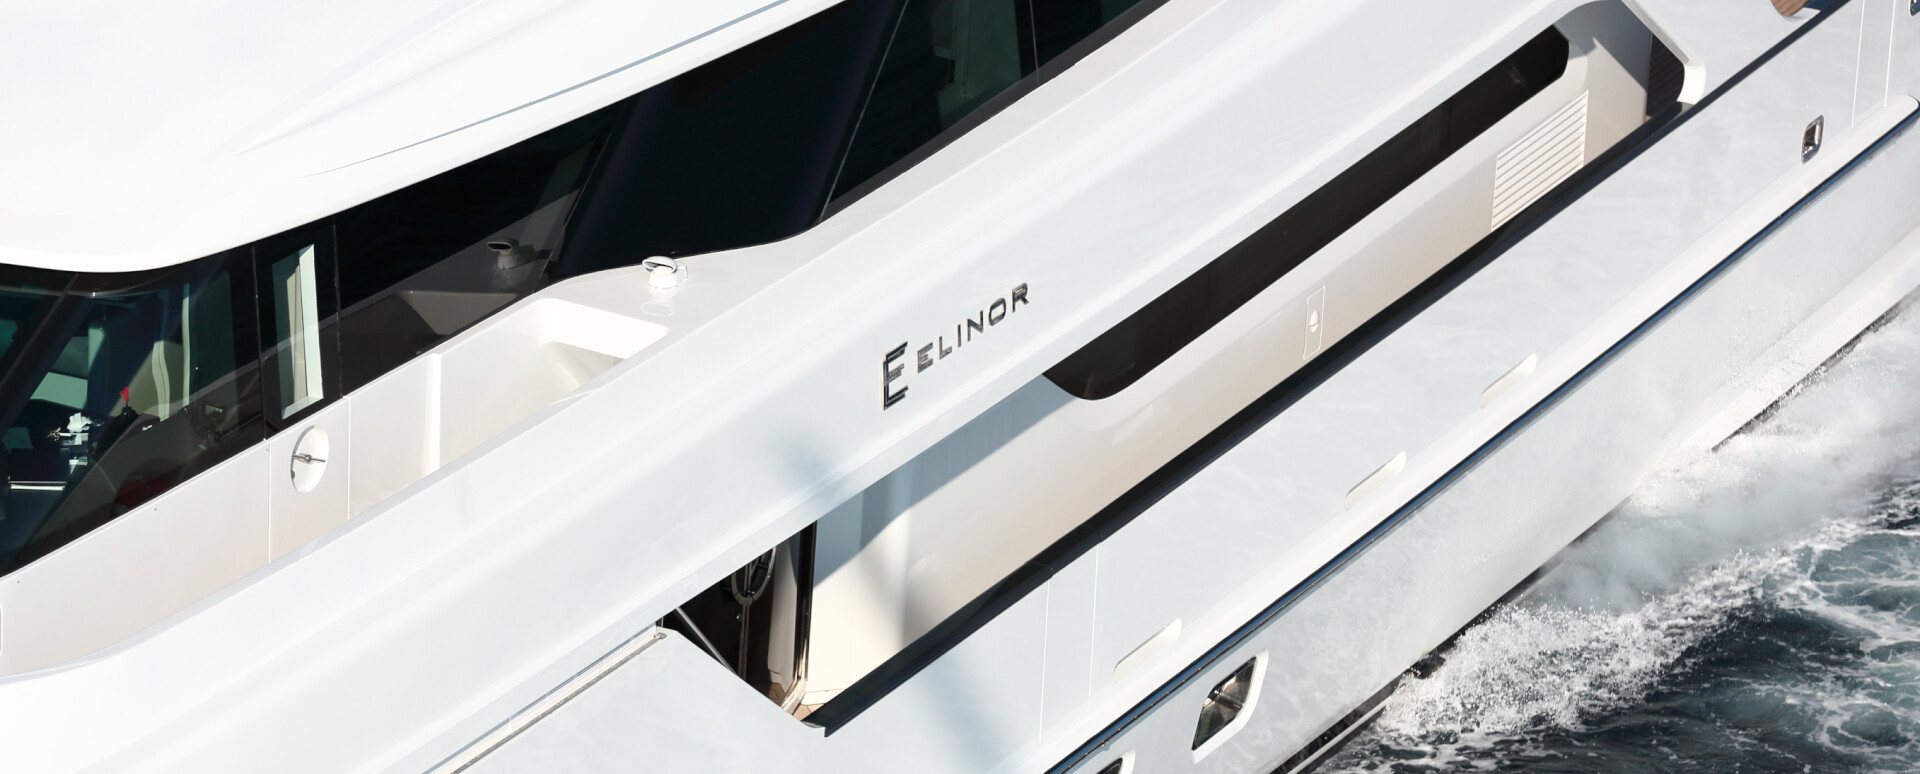 ELINOR Available for Viewings @ Cluster Yachting Monaco Spring Pop Up event, May 14th 2019